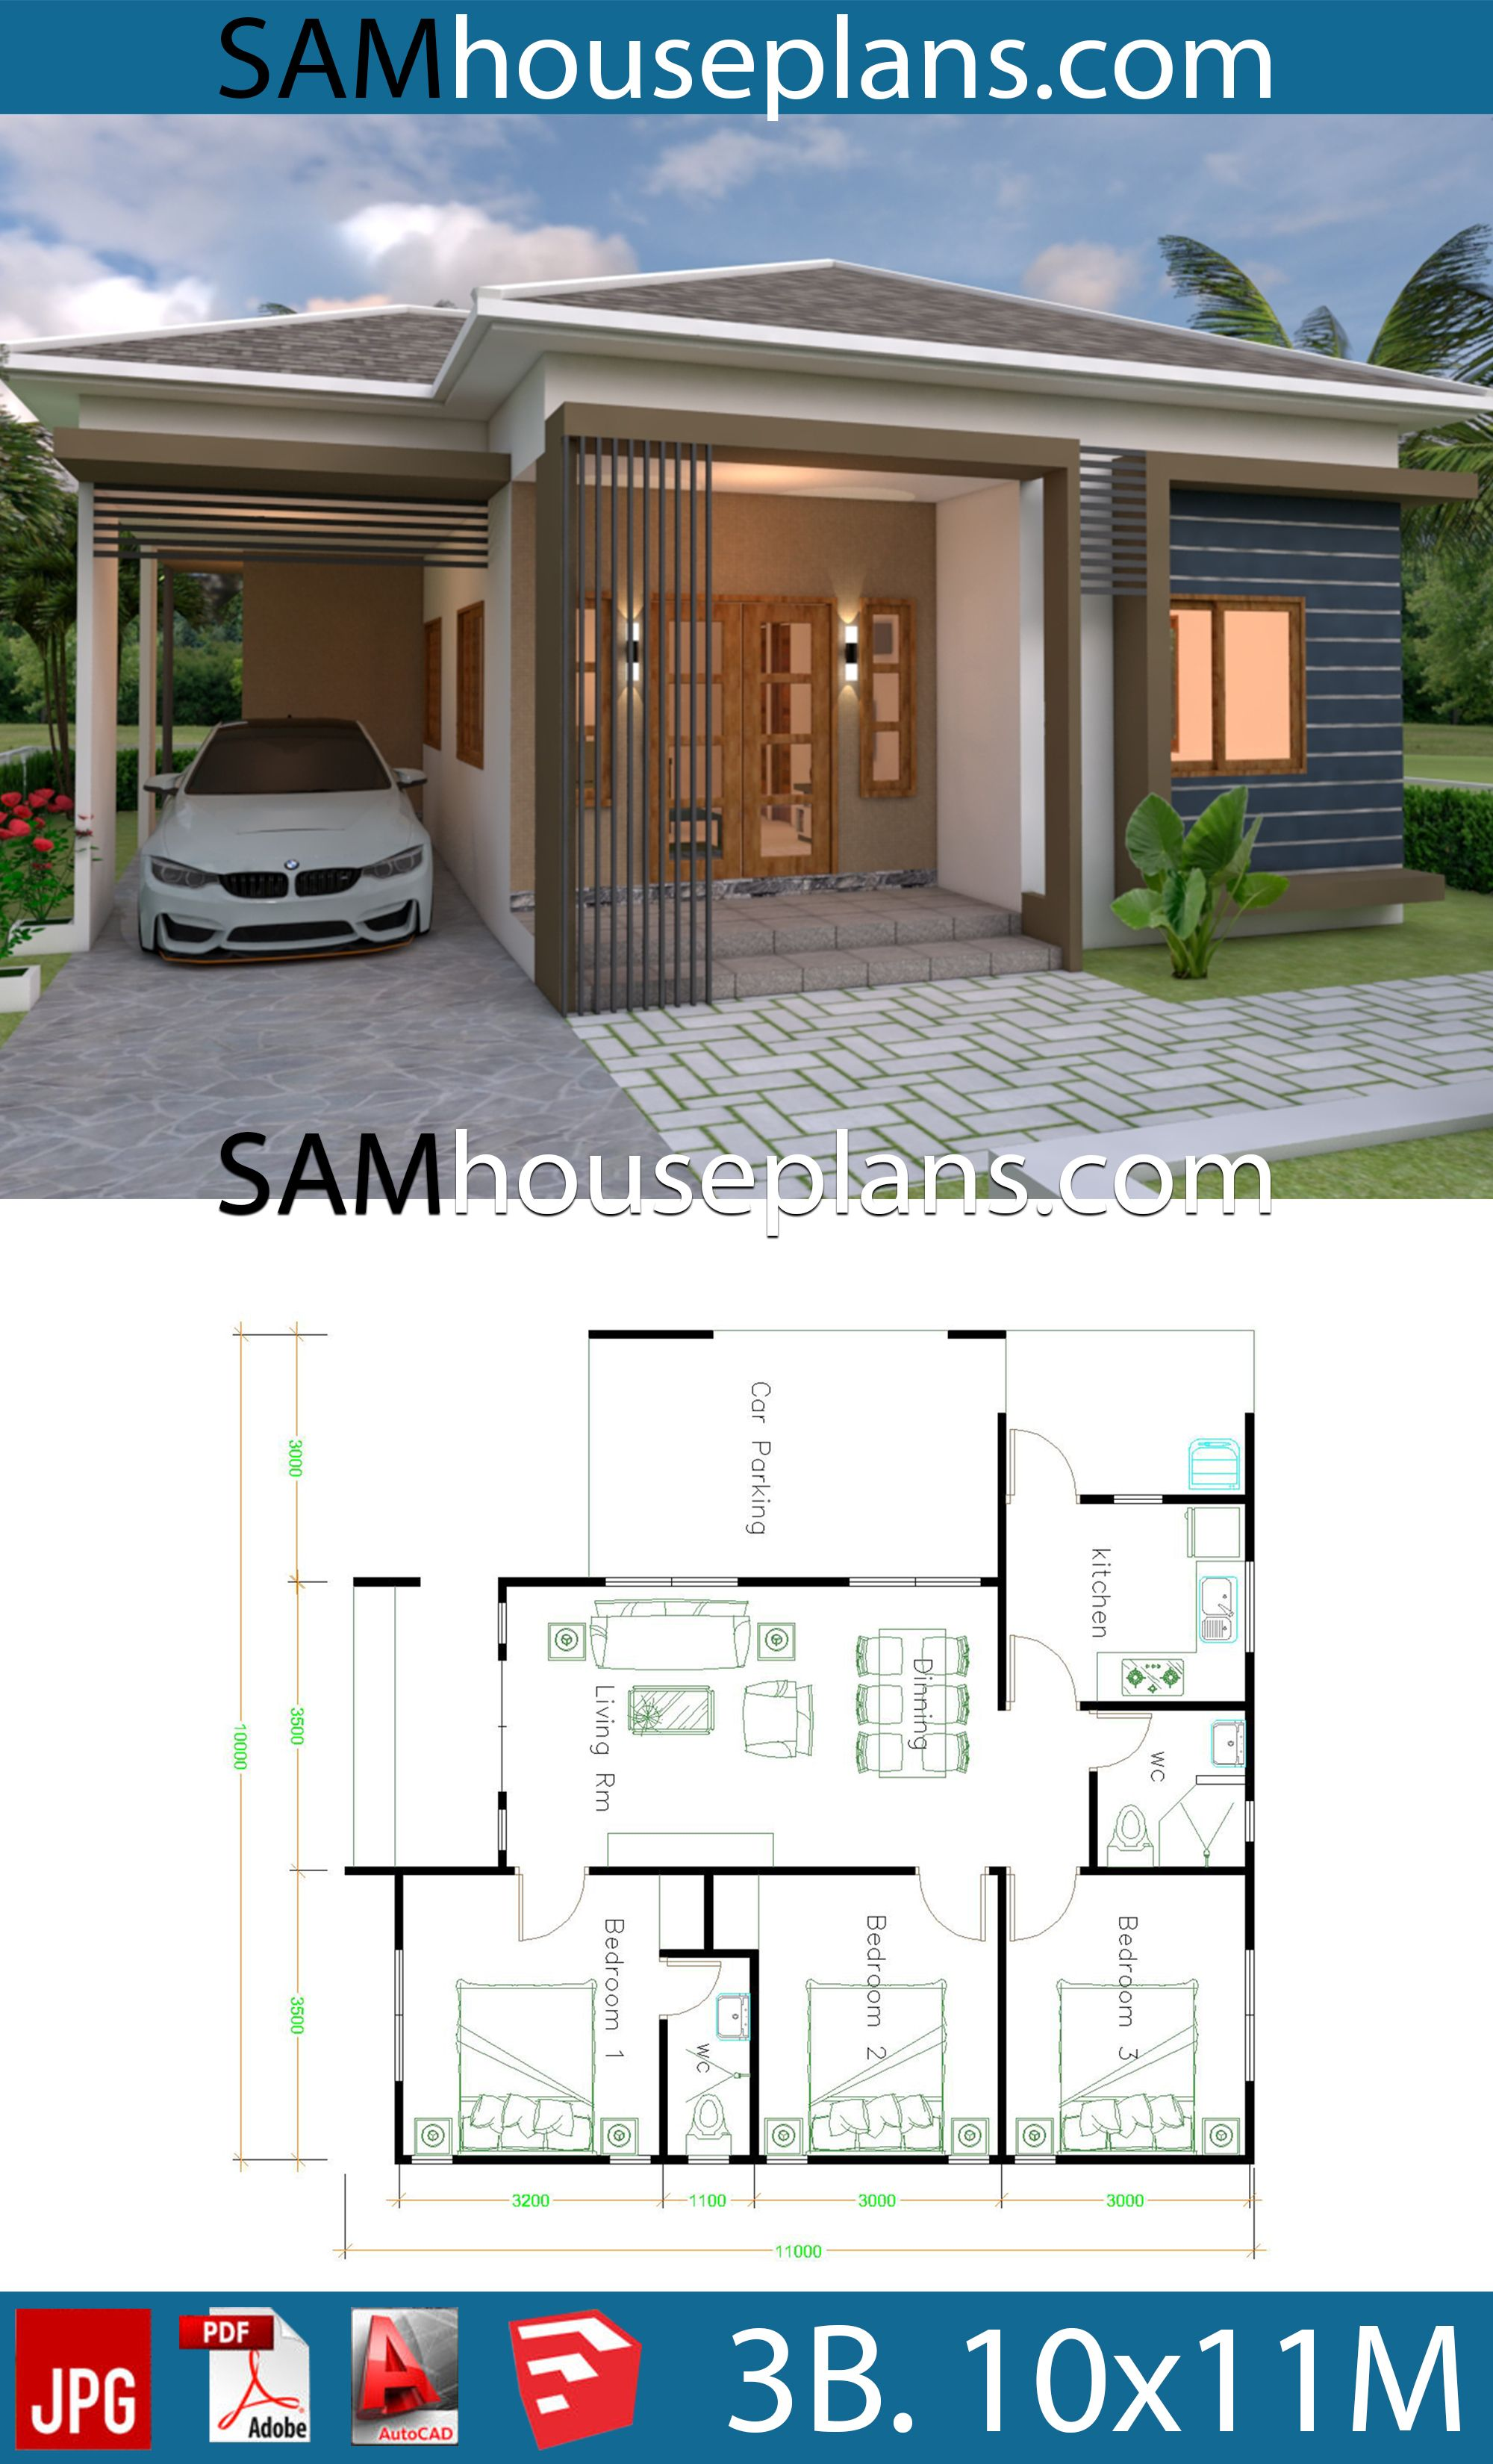 House Plans 10x11 With 3 Bedrooms Roof Tiles House Plans Free Downloads Simple Bungalow House Designs Bungalow House Design Modern Bungalow House